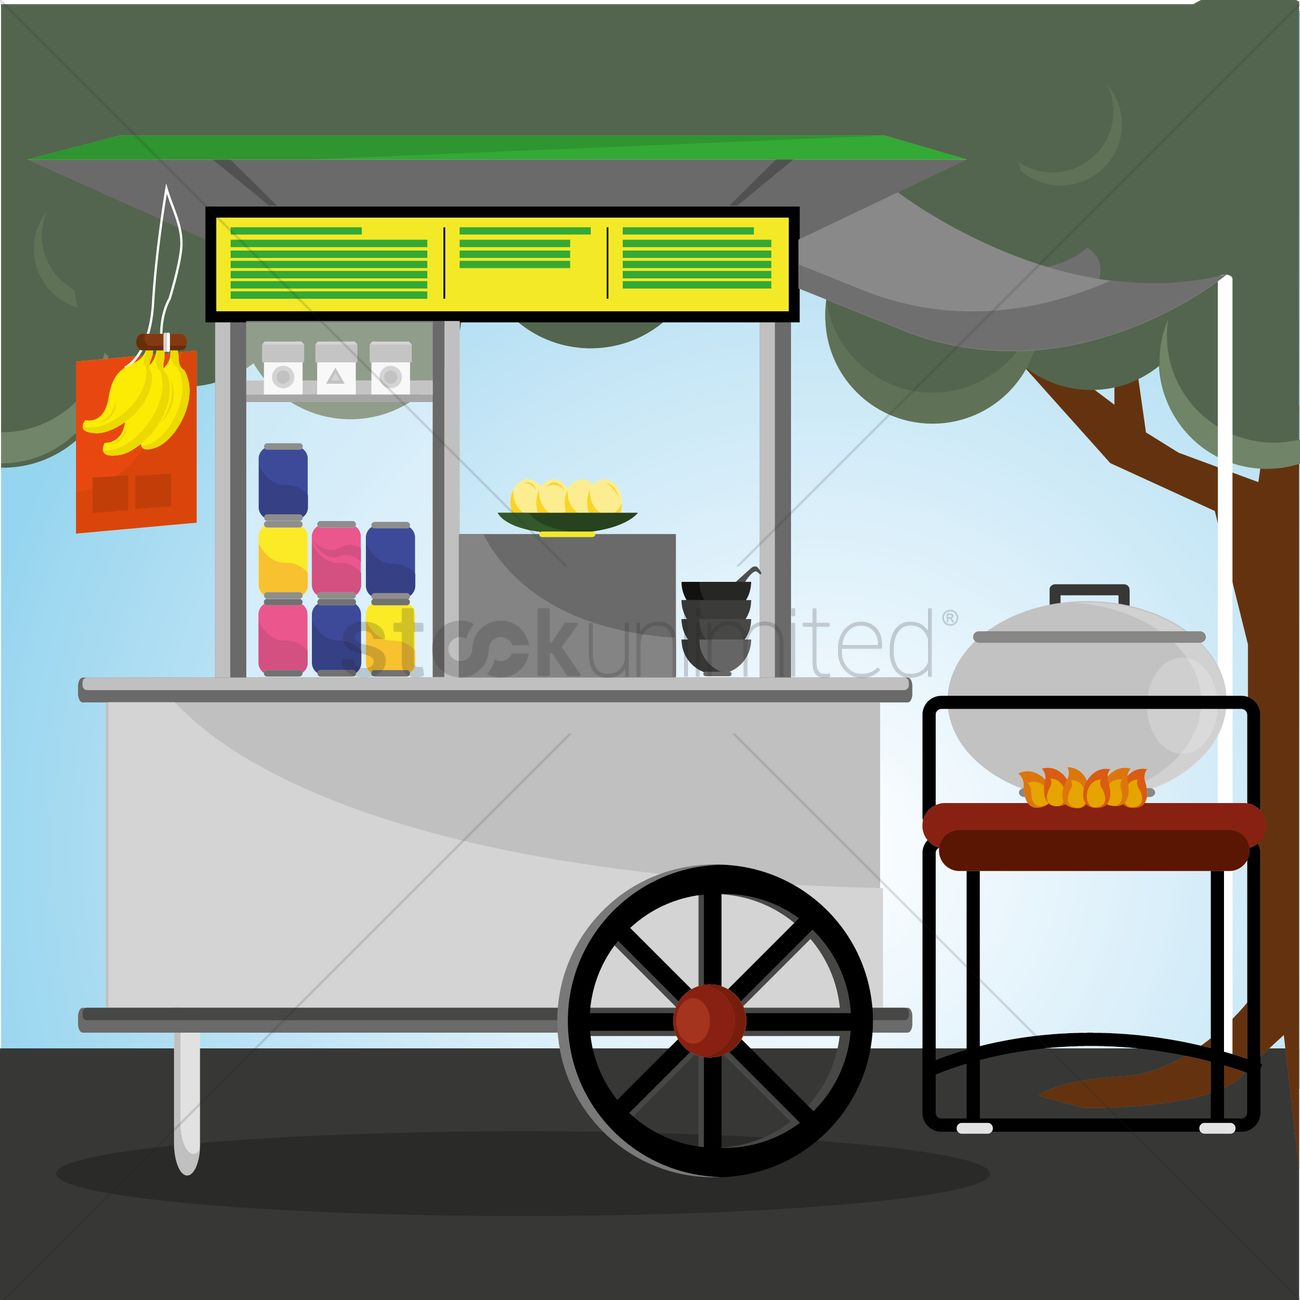 food stall cart with canopy vector graphic  sc 1 st  StockUnlimited & Food stall cart with canopy Vector Image - 1409984 | StockUnlimited